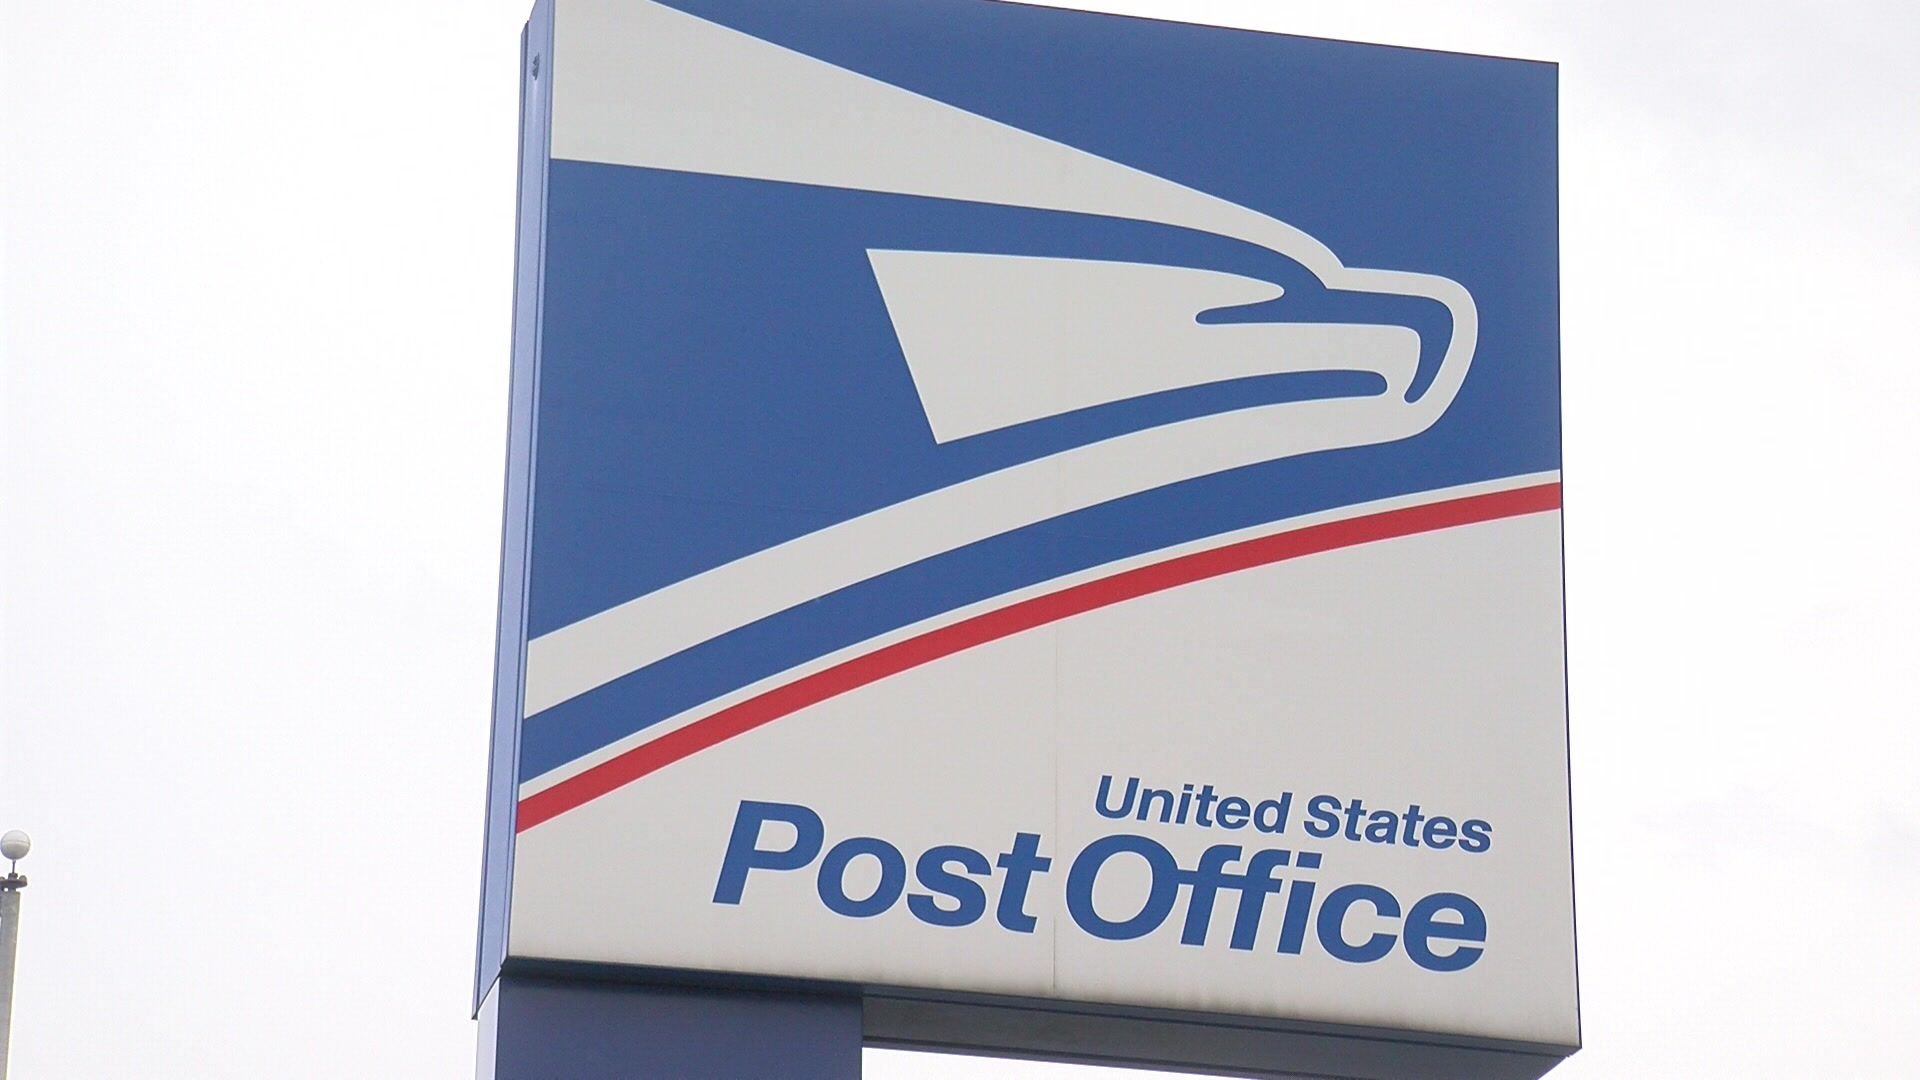 USPS offering next-day service, Sunday delivery